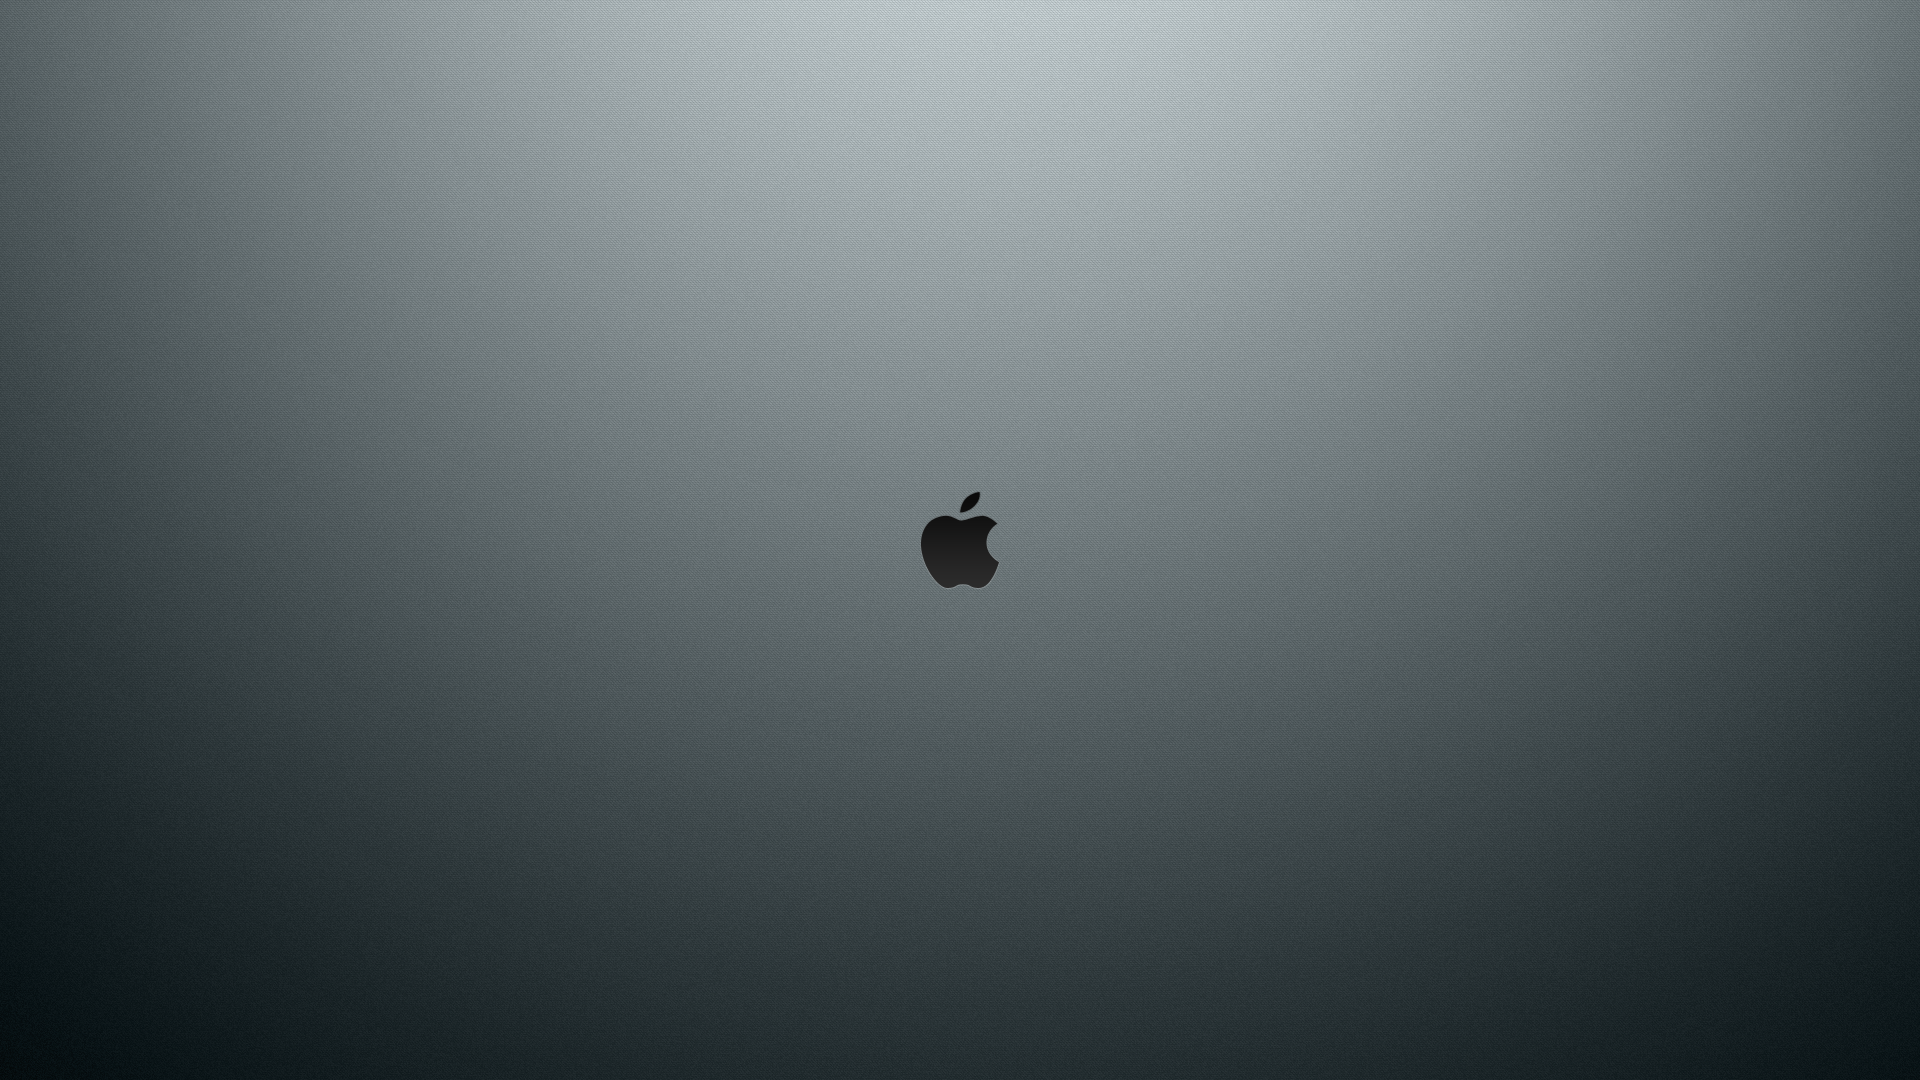 Download V.39 - Apple Logo, BsnSCB